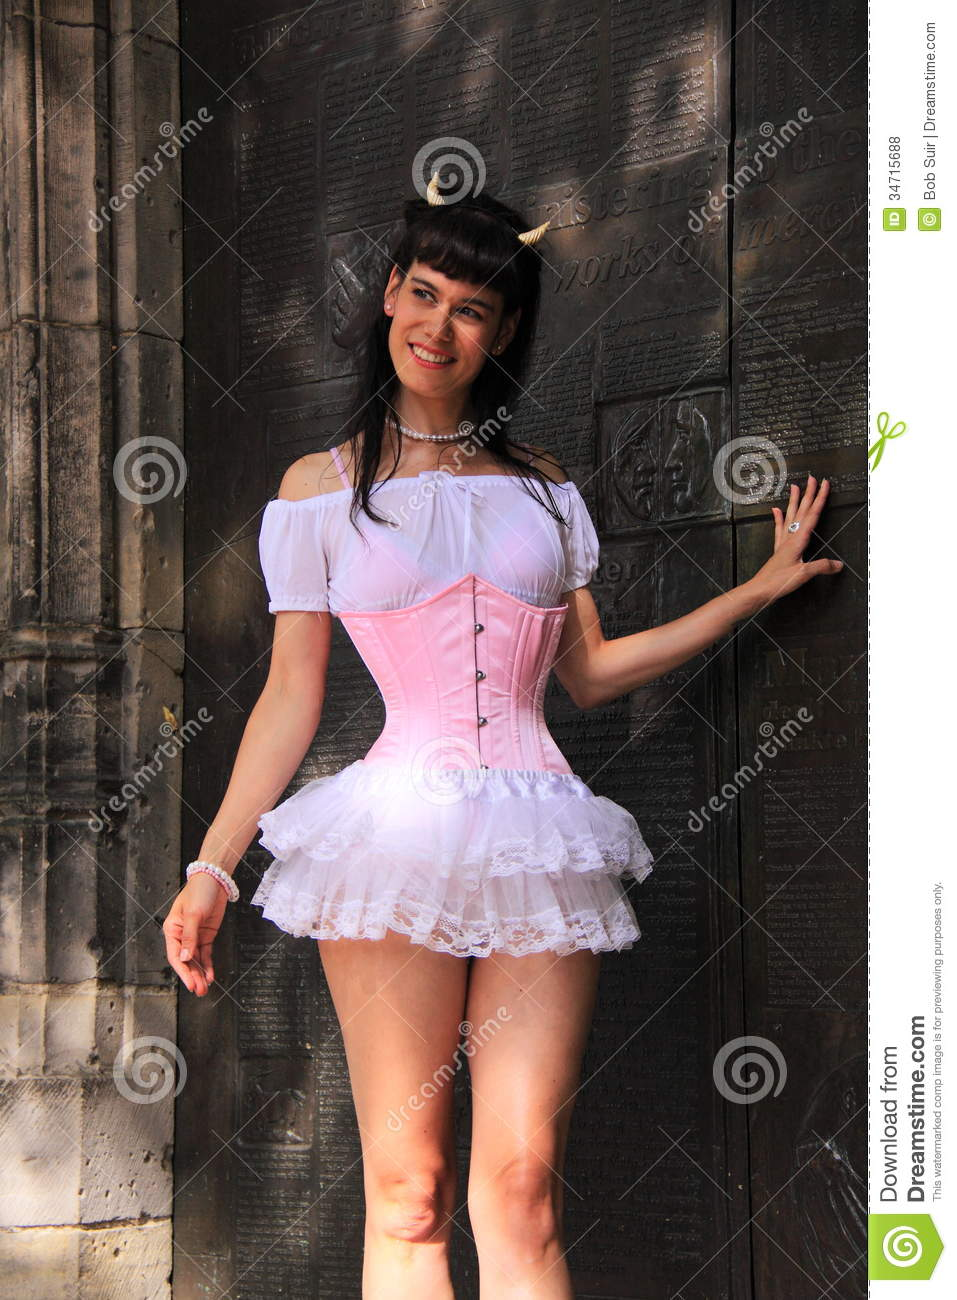 Girl Street Fashion Pink Corset Editorial Stock Photo